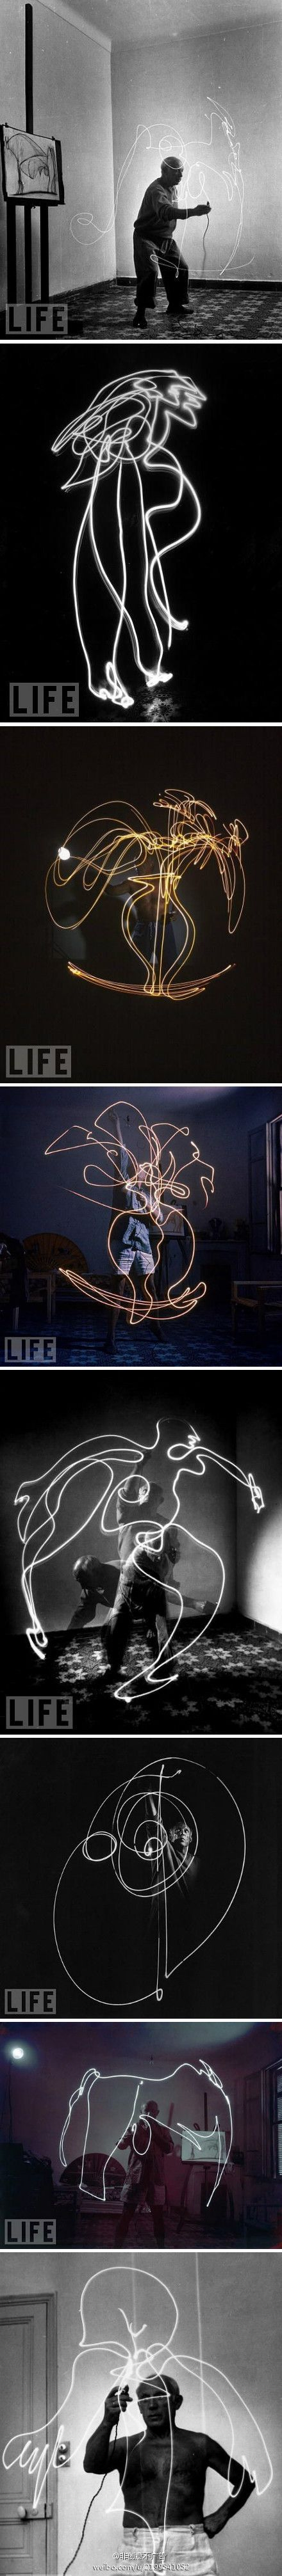 """""""In 1949, LIFE photographer Gjon Mili visited Picasso in Vallauris, France. He showed Pablo some photographs of ice skaters with tiny lights affixed to their skates jumping in the dark. Picasso was immediately inspired, these photos were the result."""""""